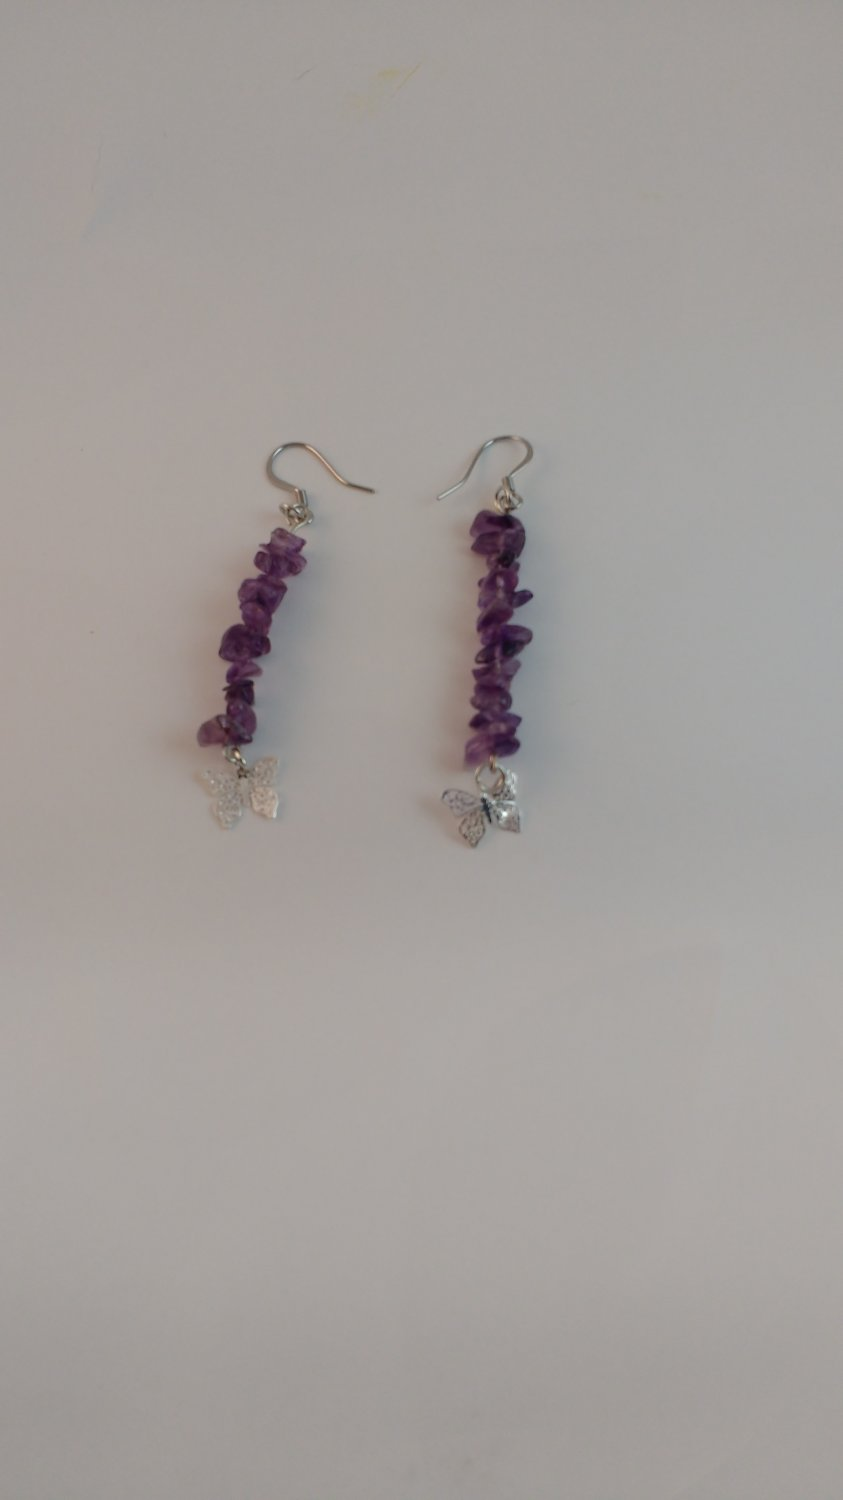 Handmade Amethyst Dangle with Butterfly Charm Earring and Stainless Steel Ear Hook